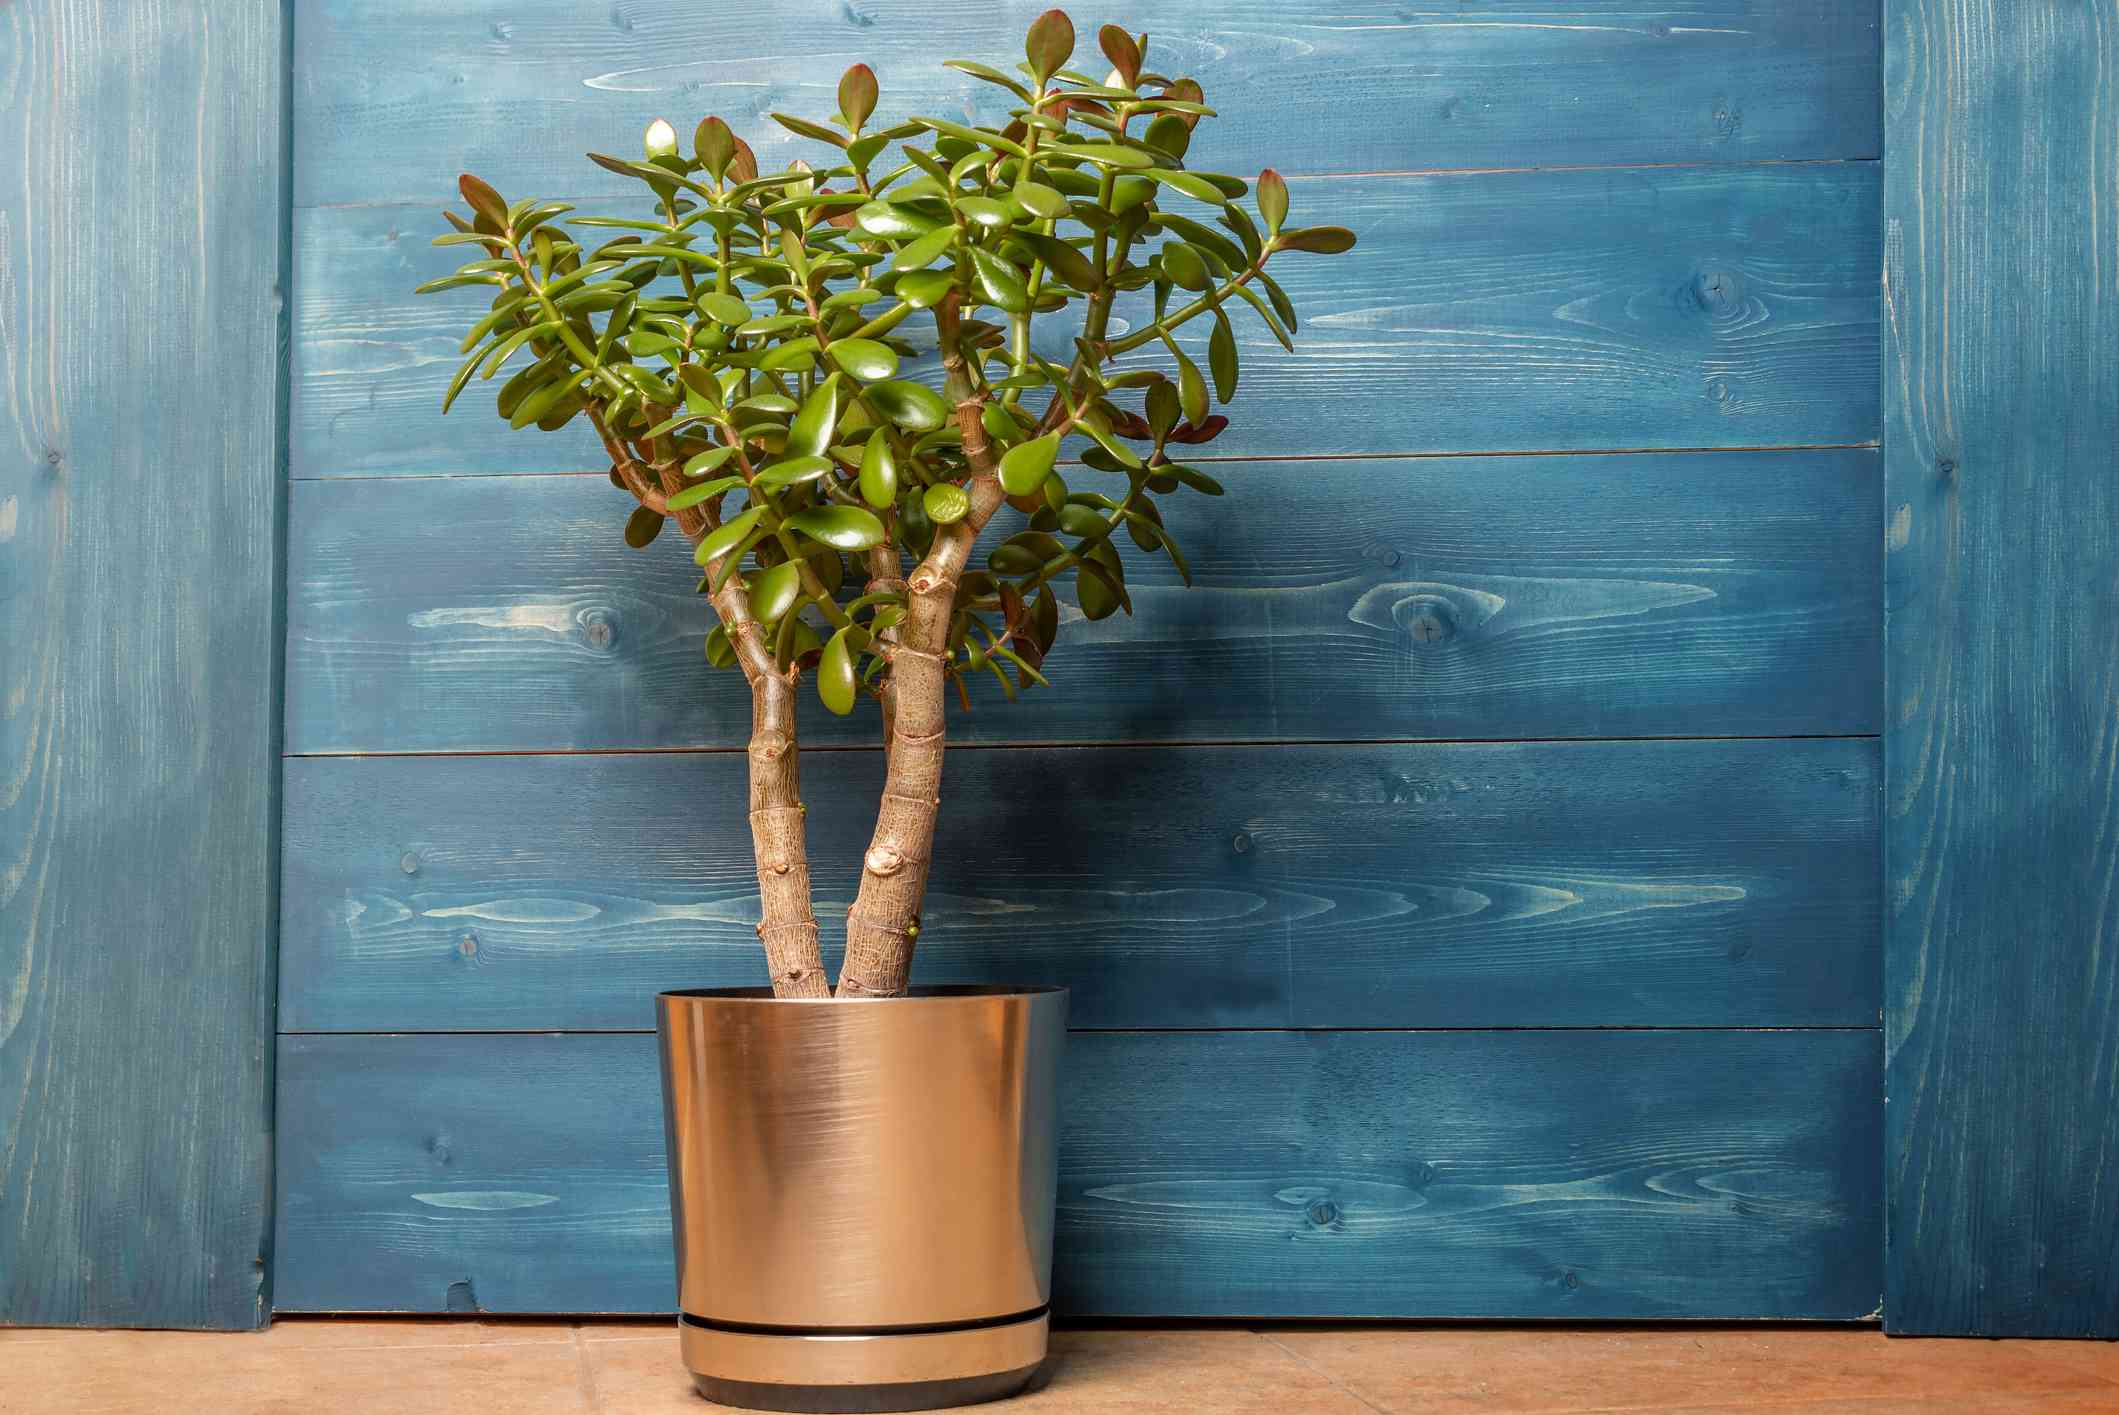 Jade Plant Succulent houseplant Crassula in a pot on a wooden blue background